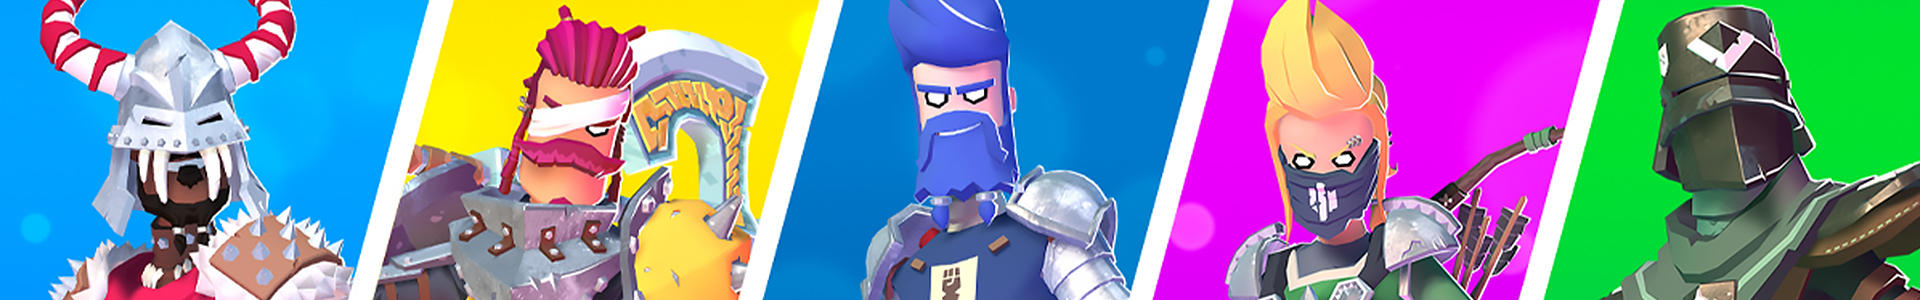 Banner media of Knighthood video game.